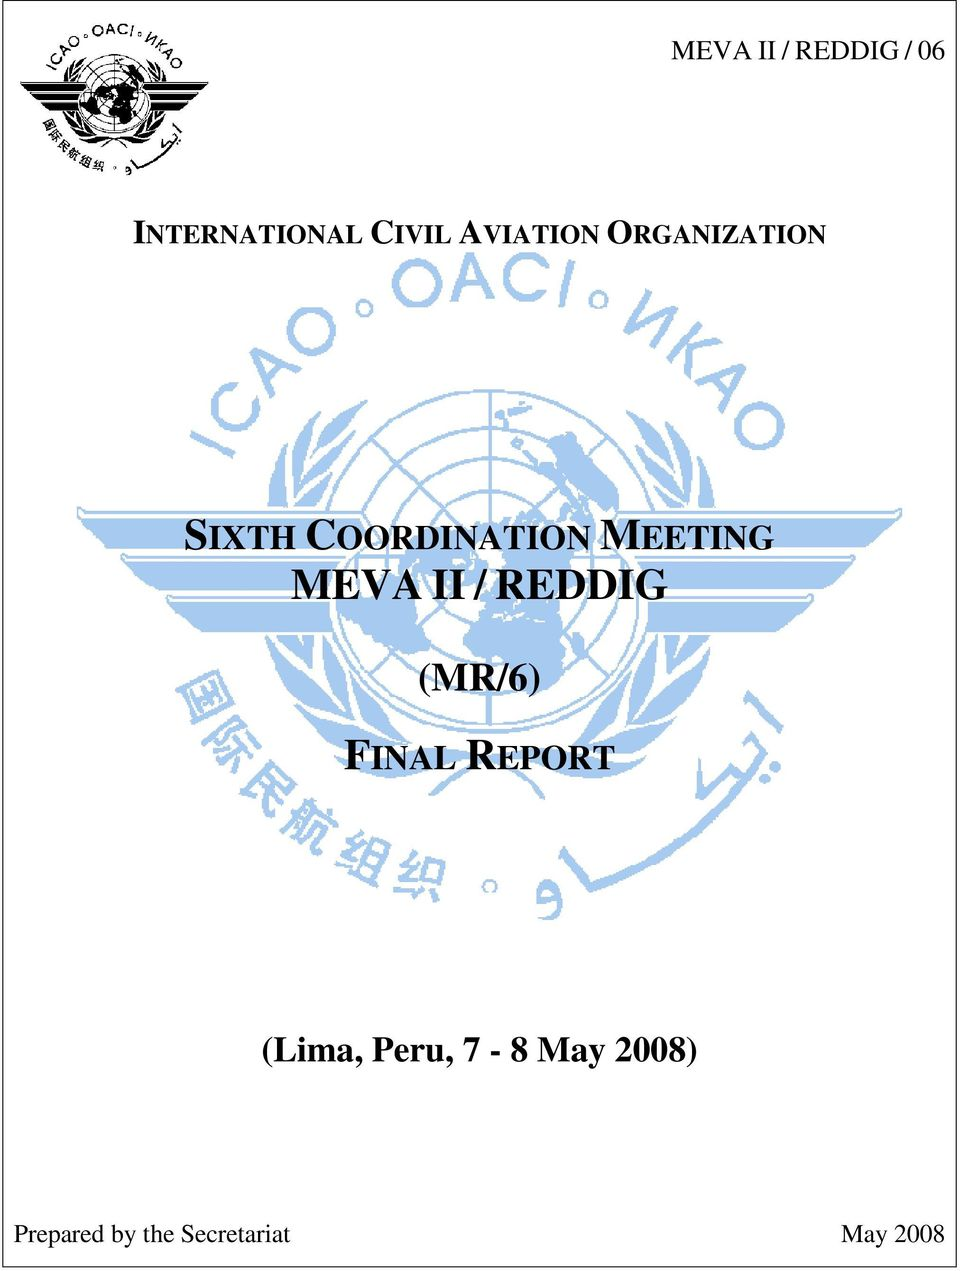 MEETING MEVA II / REDDIG (MR/6) FINAL REPORT